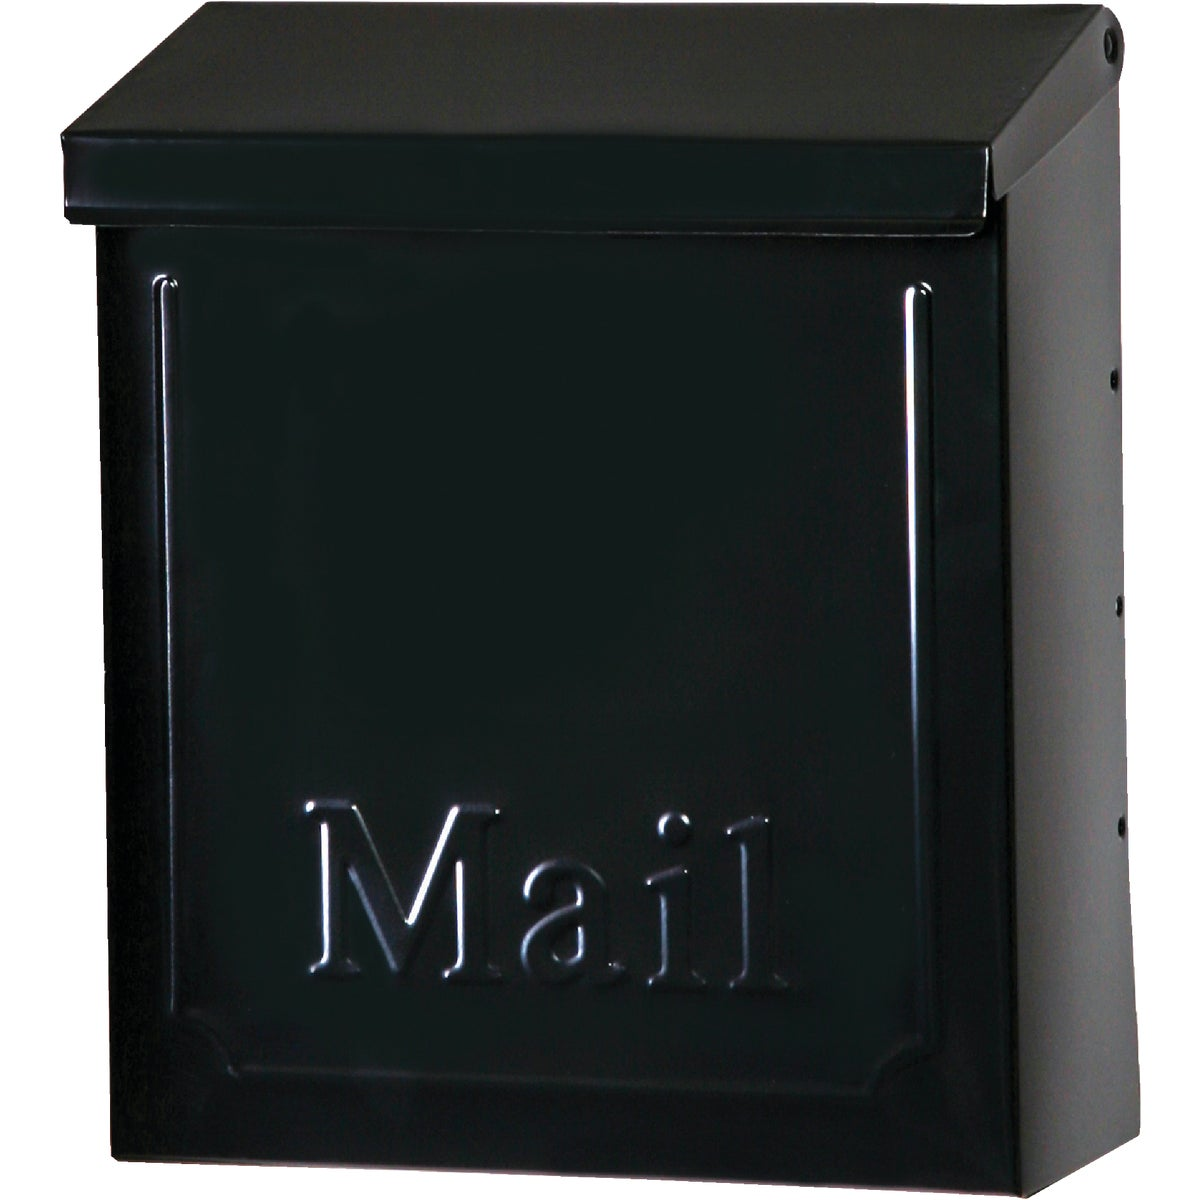 BLK VERT WALL MAILBOX - THVK0000 by Solar Group